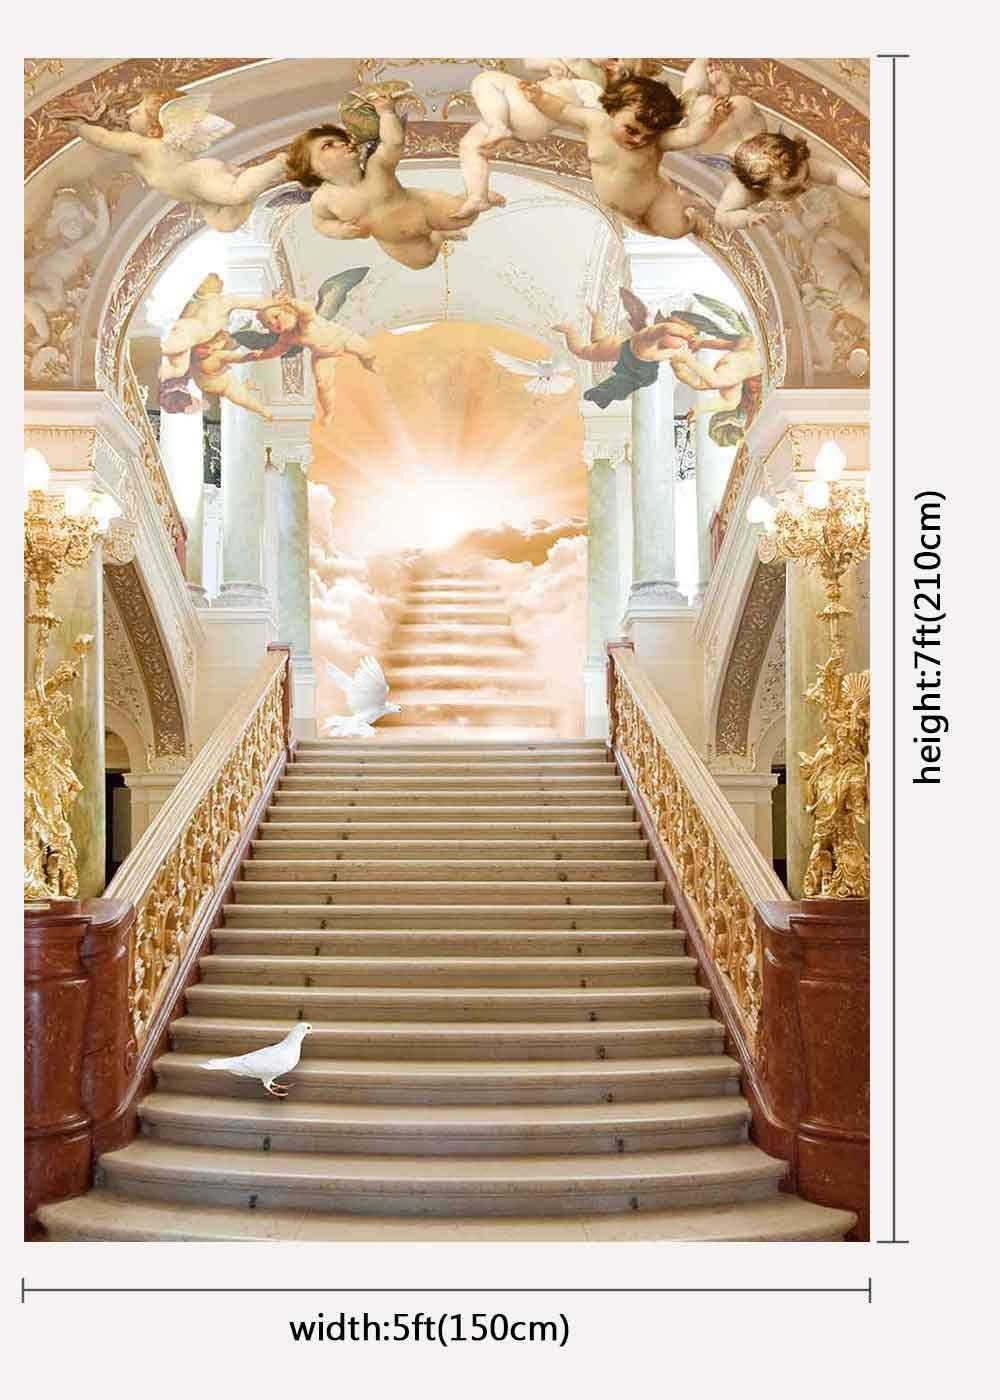 FUERMOR Background 7x5ft Royal Golden Hall Photography Backdrop Wedding Event Studio Photo Props LXFU079